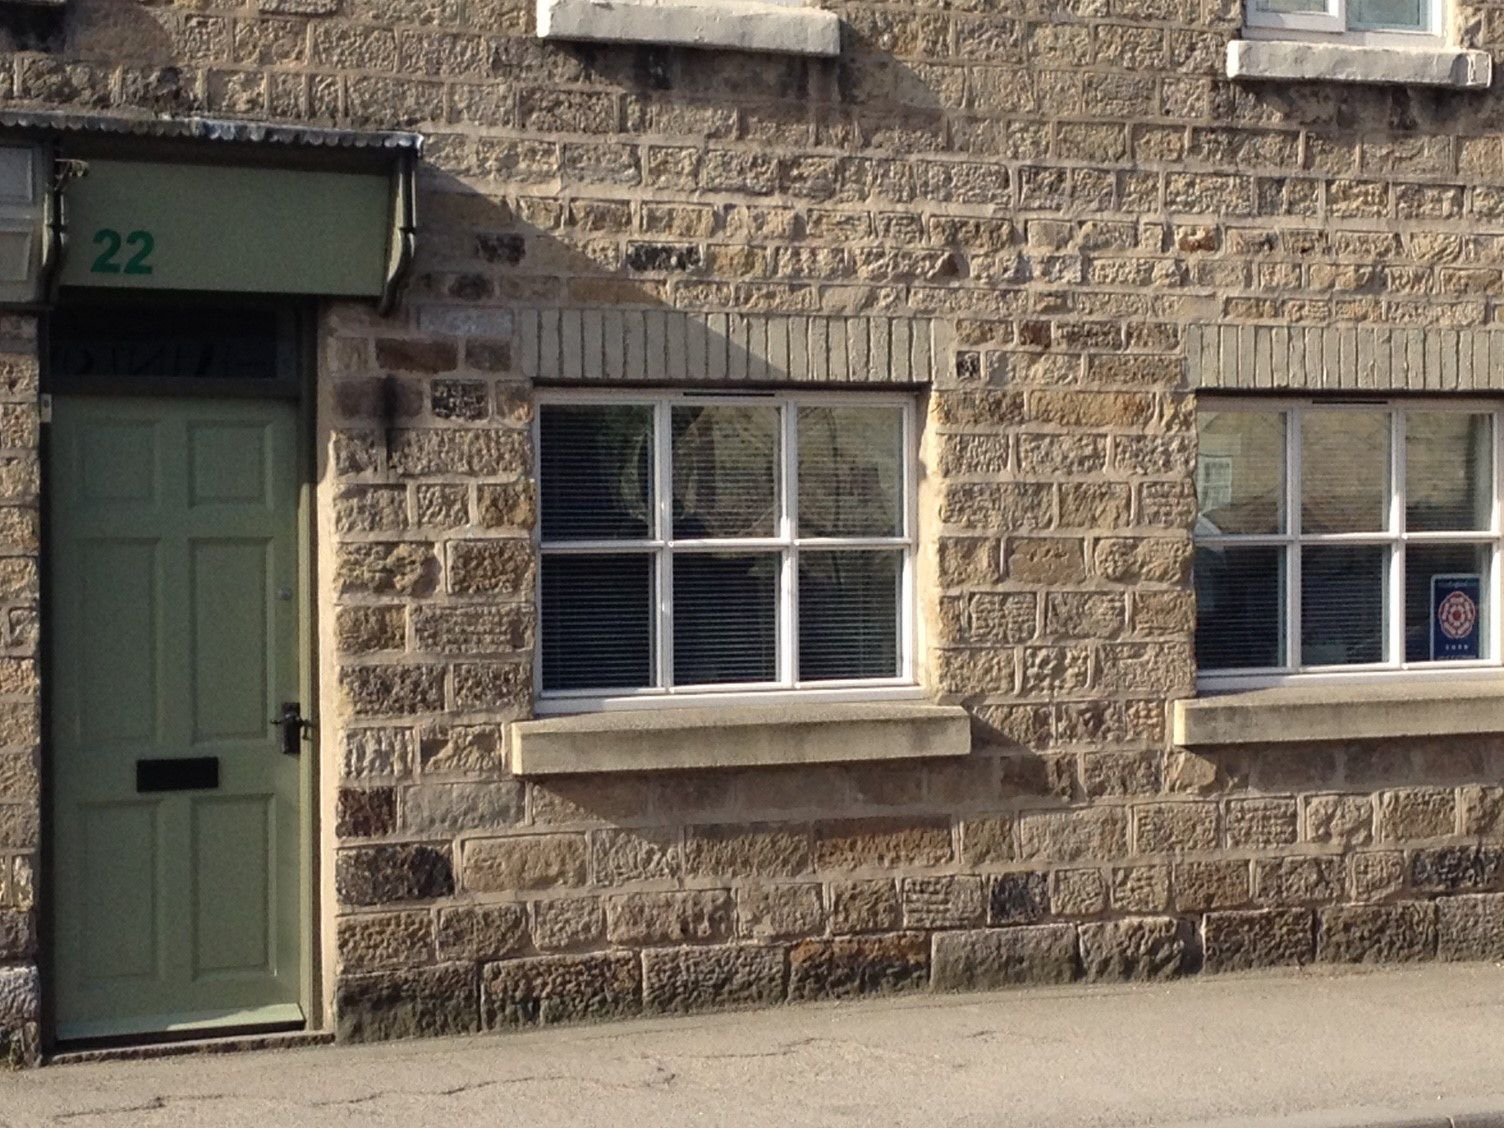 Photo of 22 Hungate ( Ref 957902 ) Pickering holiday cottage sleeps 4 - Self catering accommodation in Ryedale North Yorkshire